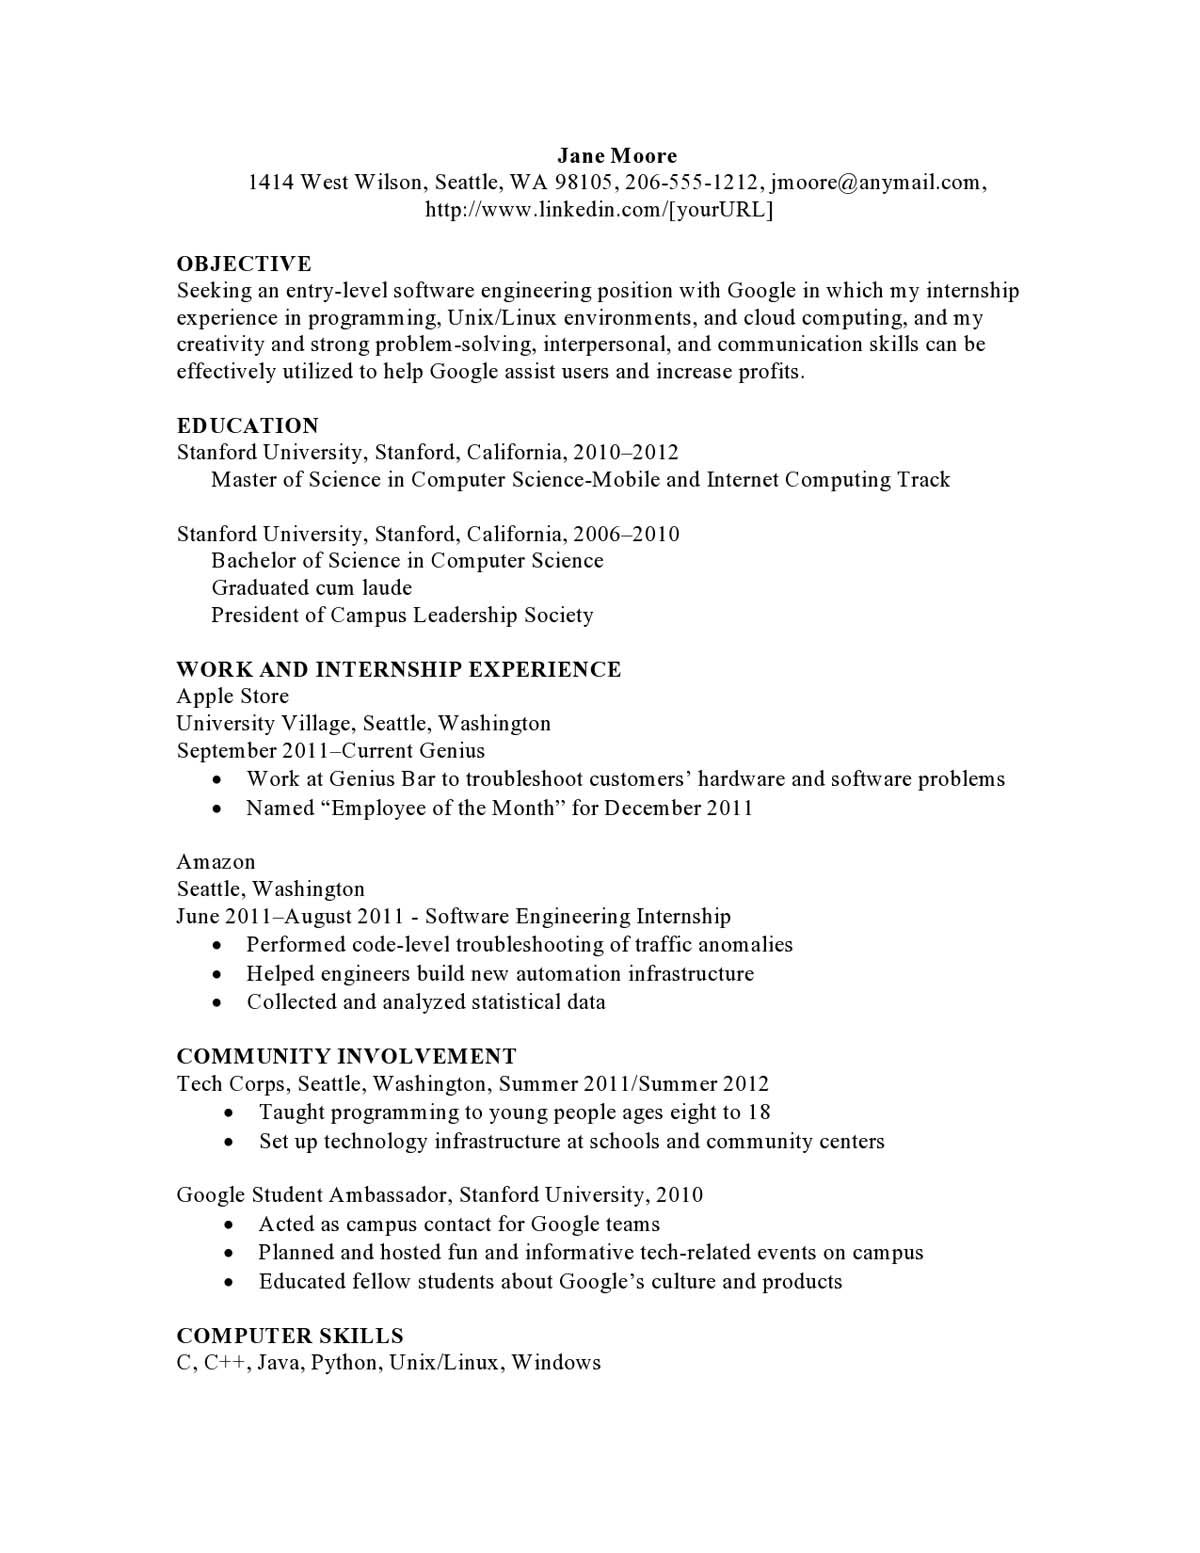 Apple Store Resume New Computer Software Entry Level Combination Resume  Get Ahead .